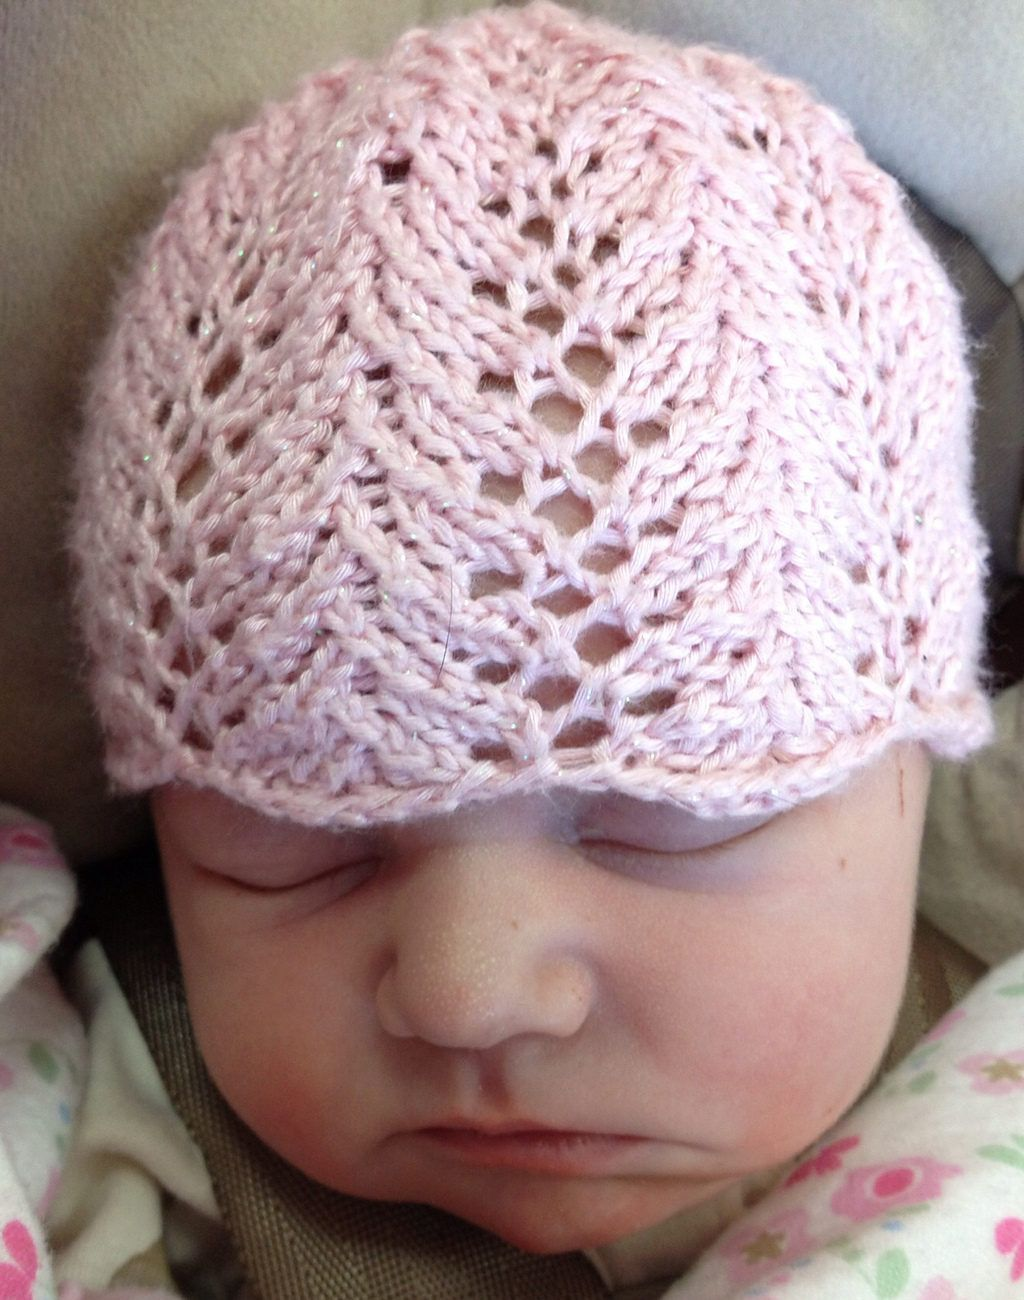 Free Knitting Pattern for Vine Lace Baby Hat | Baby knitting